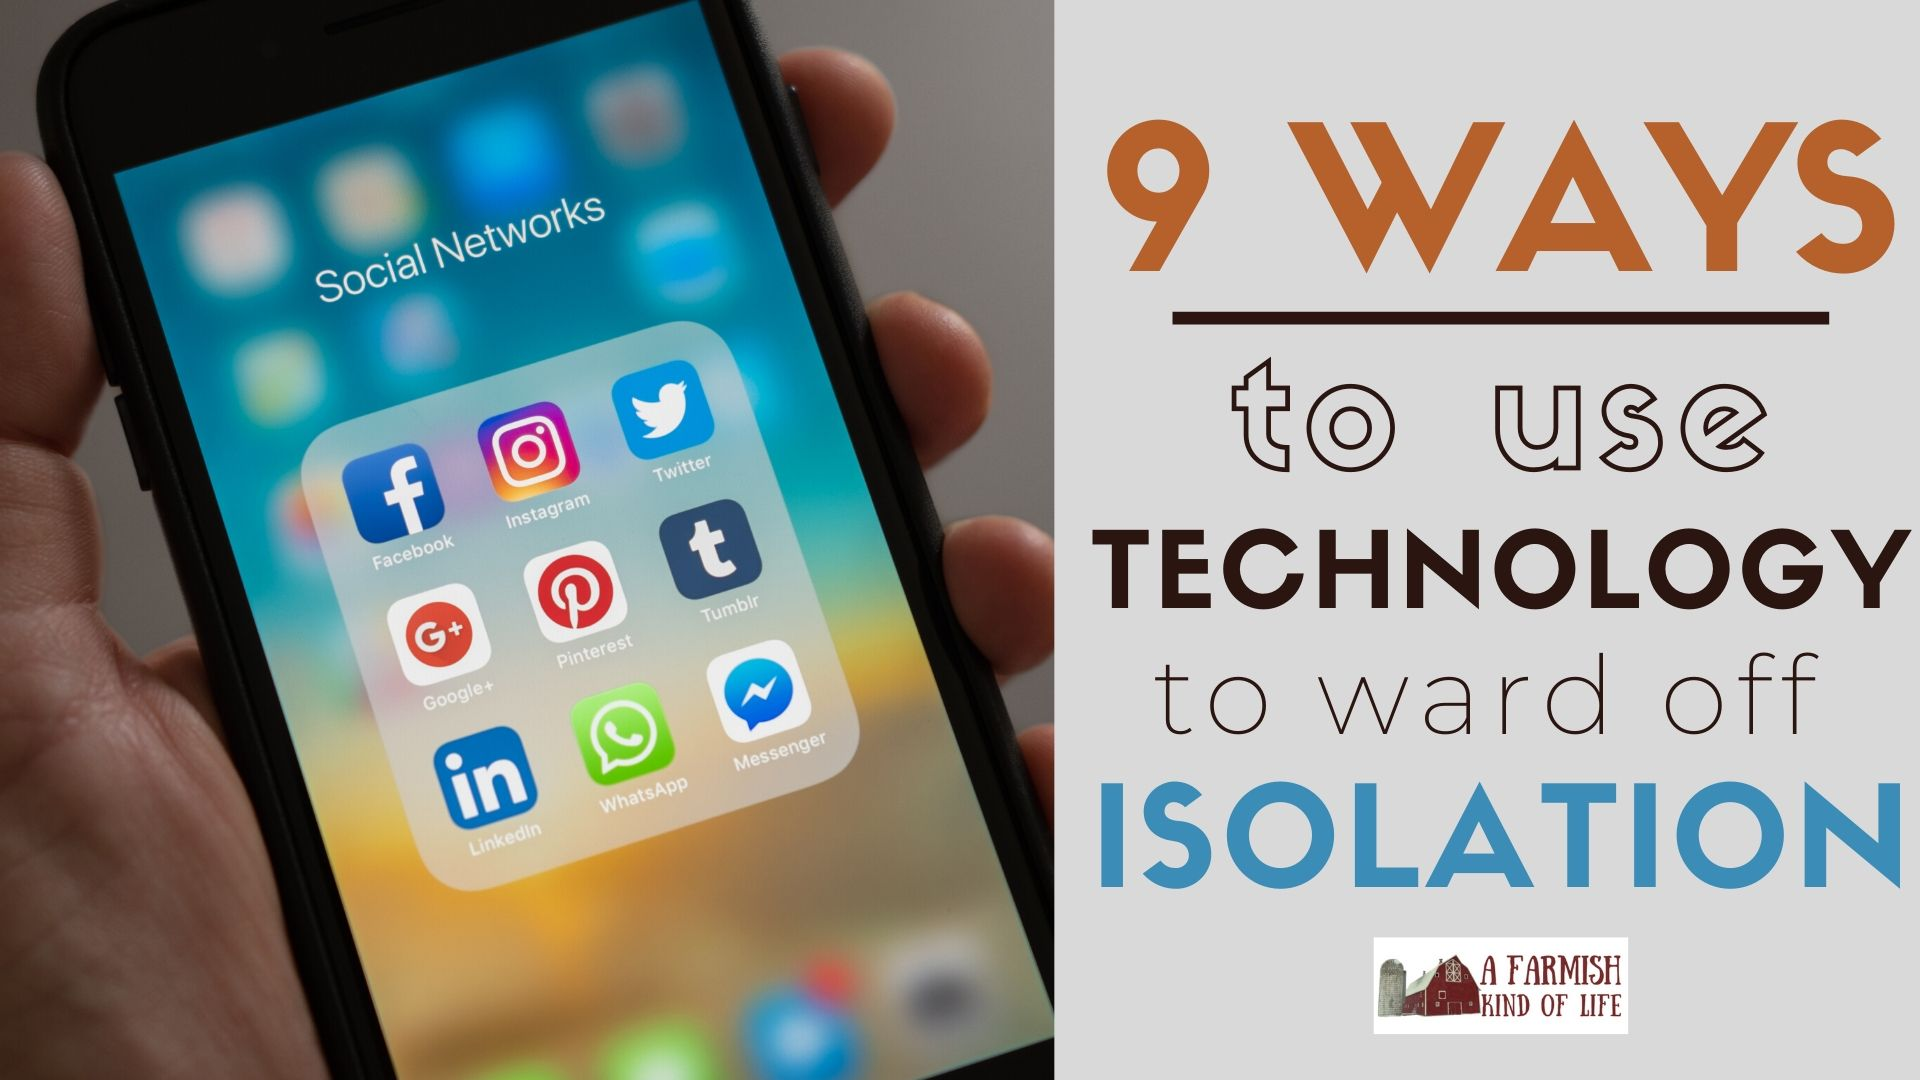 83: 9 ways to use technology to ward off isolation